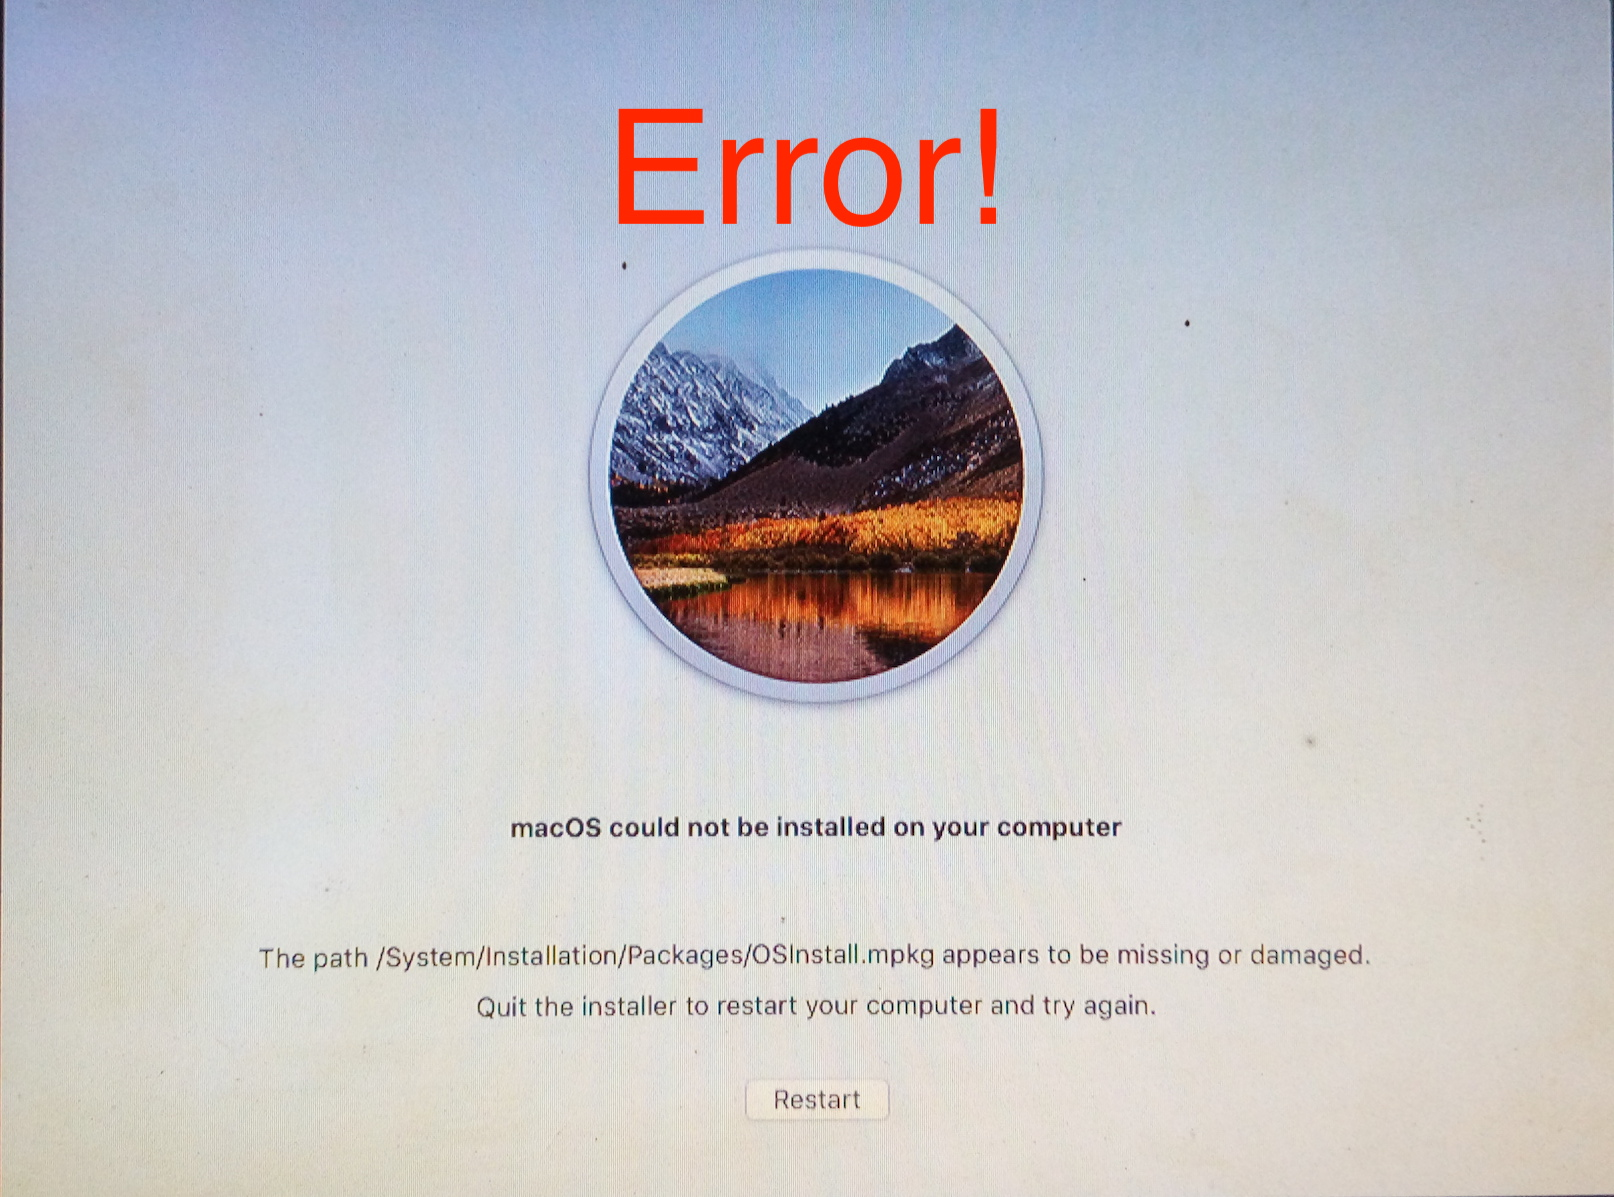 Hackintosh Usb Bootable Made in Windows for macOS High Sierra Error